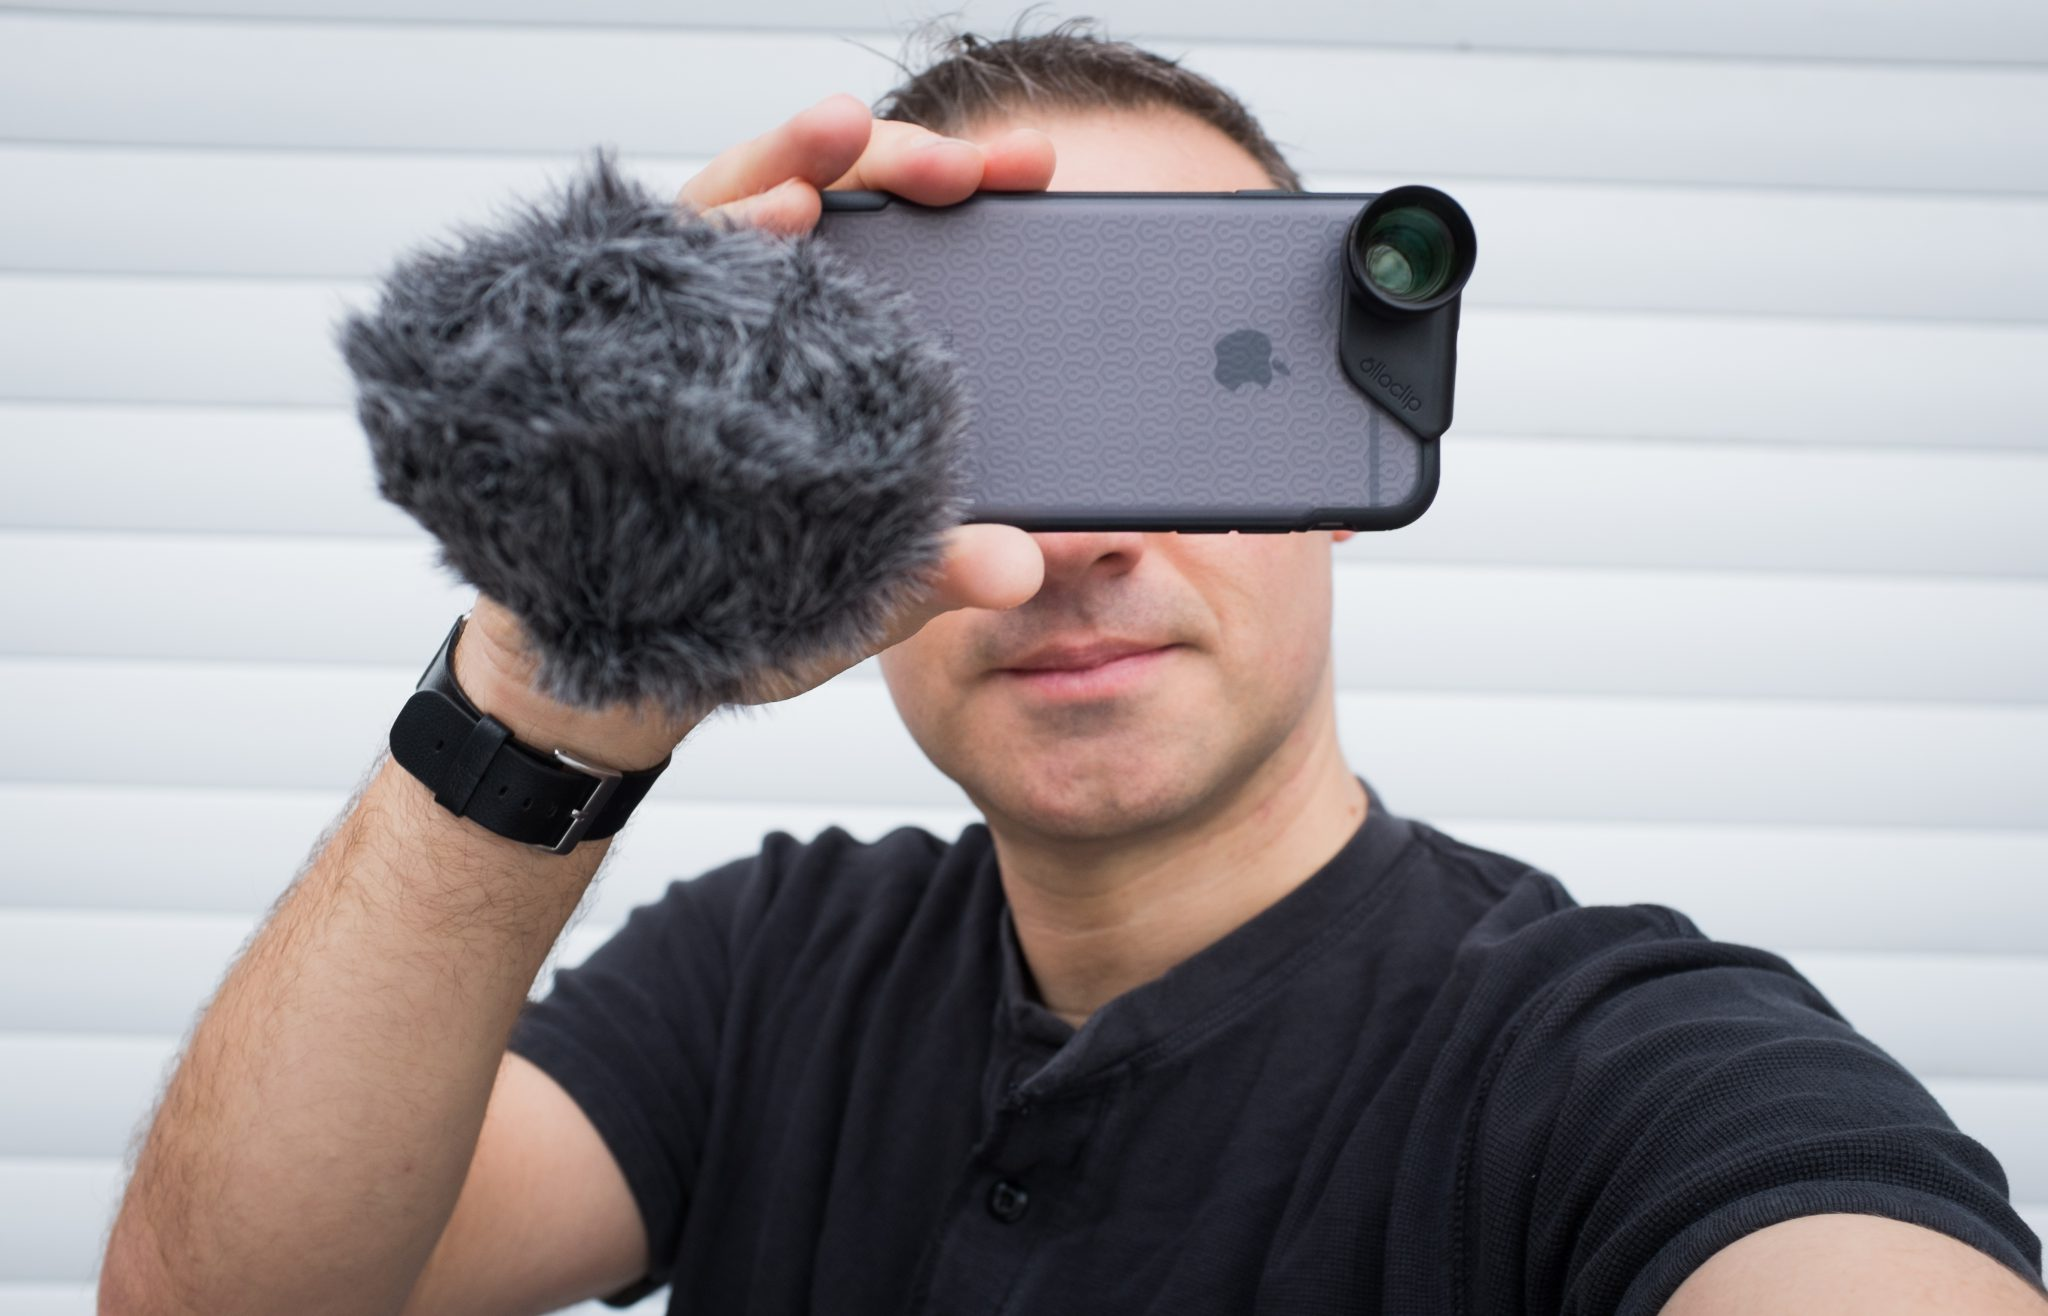 Rde Videomic Me Review Mic Rode Videomicro Video Micro On An Iphone Rig